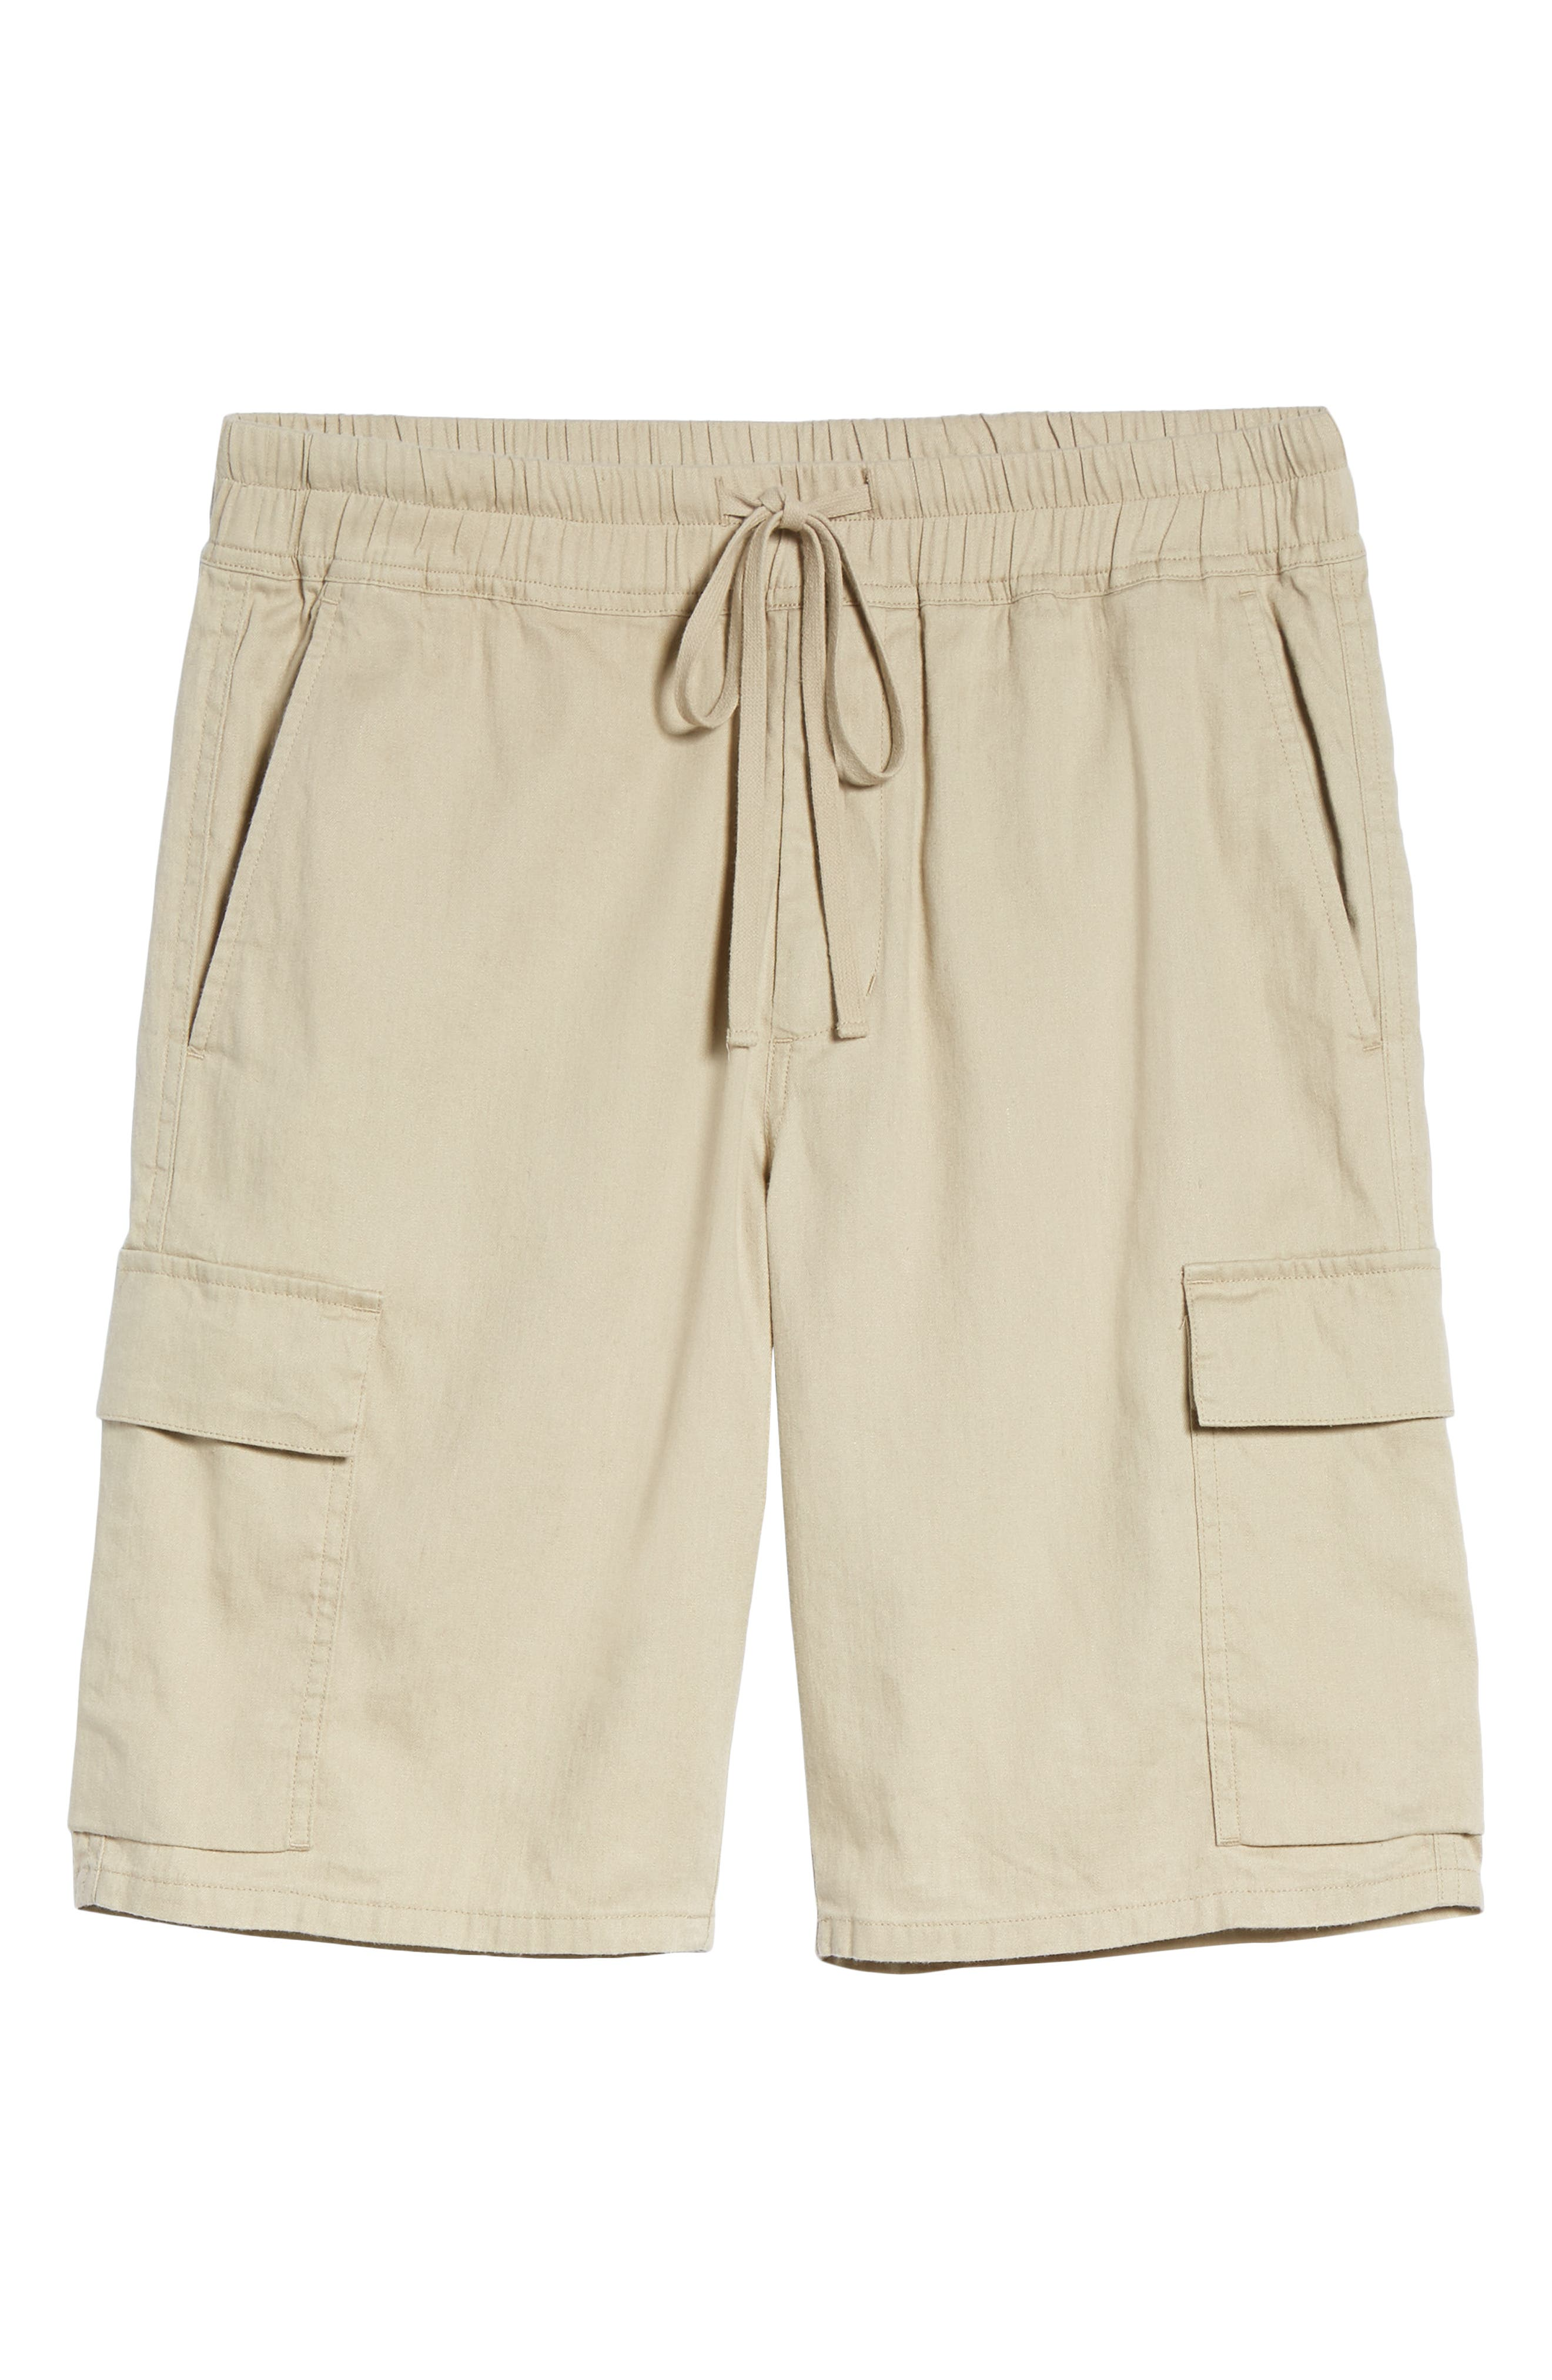 Stretch Linen & Cotton Cargo Shorts,                             Alternate thumbnail 6, color,                             FLAX